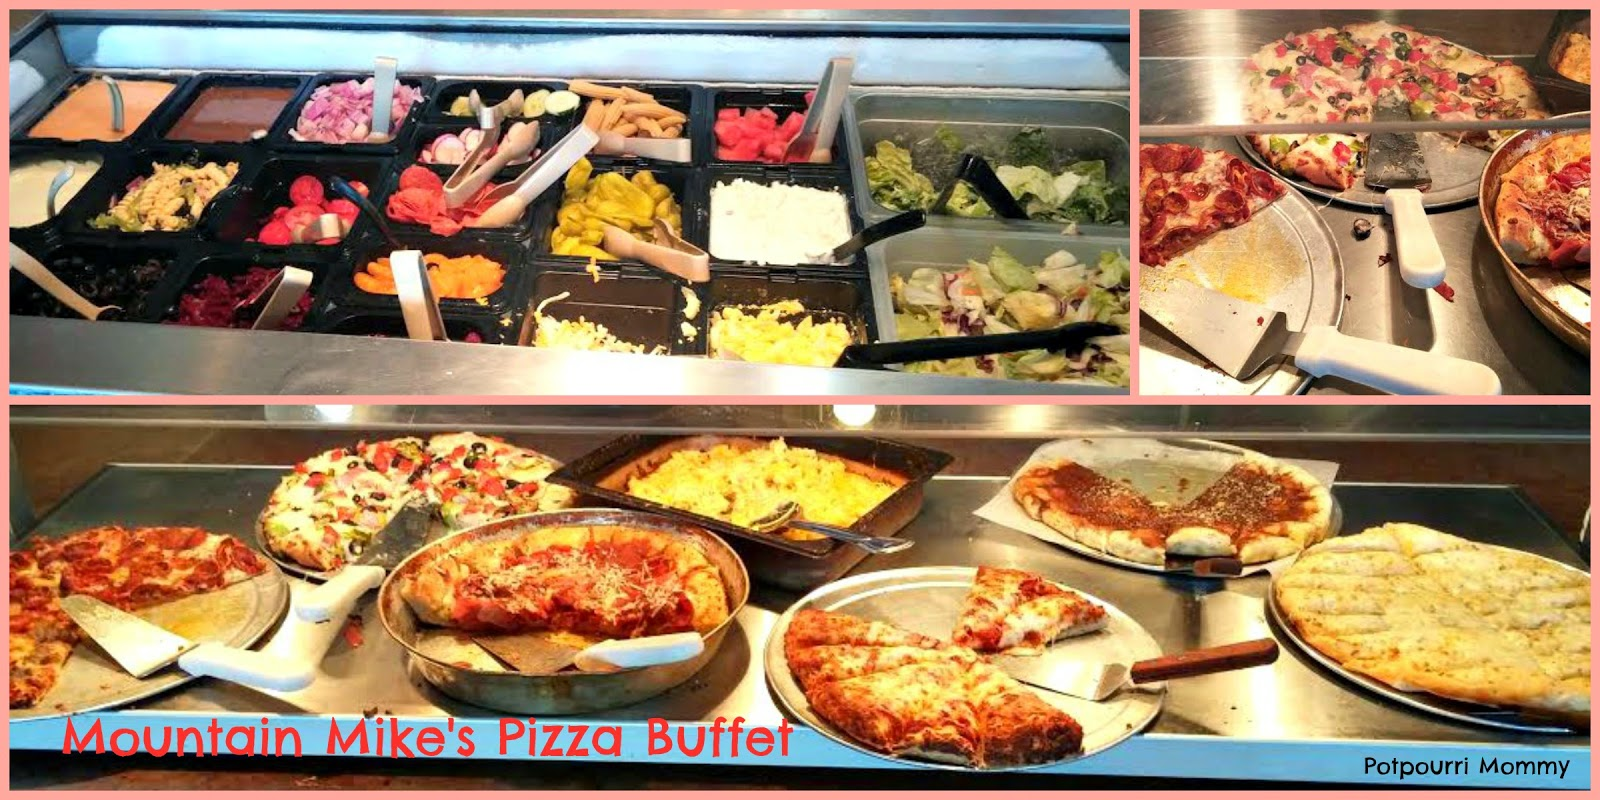 potpourri mommy pizza pizza easy homemade pizza and mountain rh potpourrimommy blogspot com mountain mikes buffet hours livermore mountain mikes buffet hours livermore